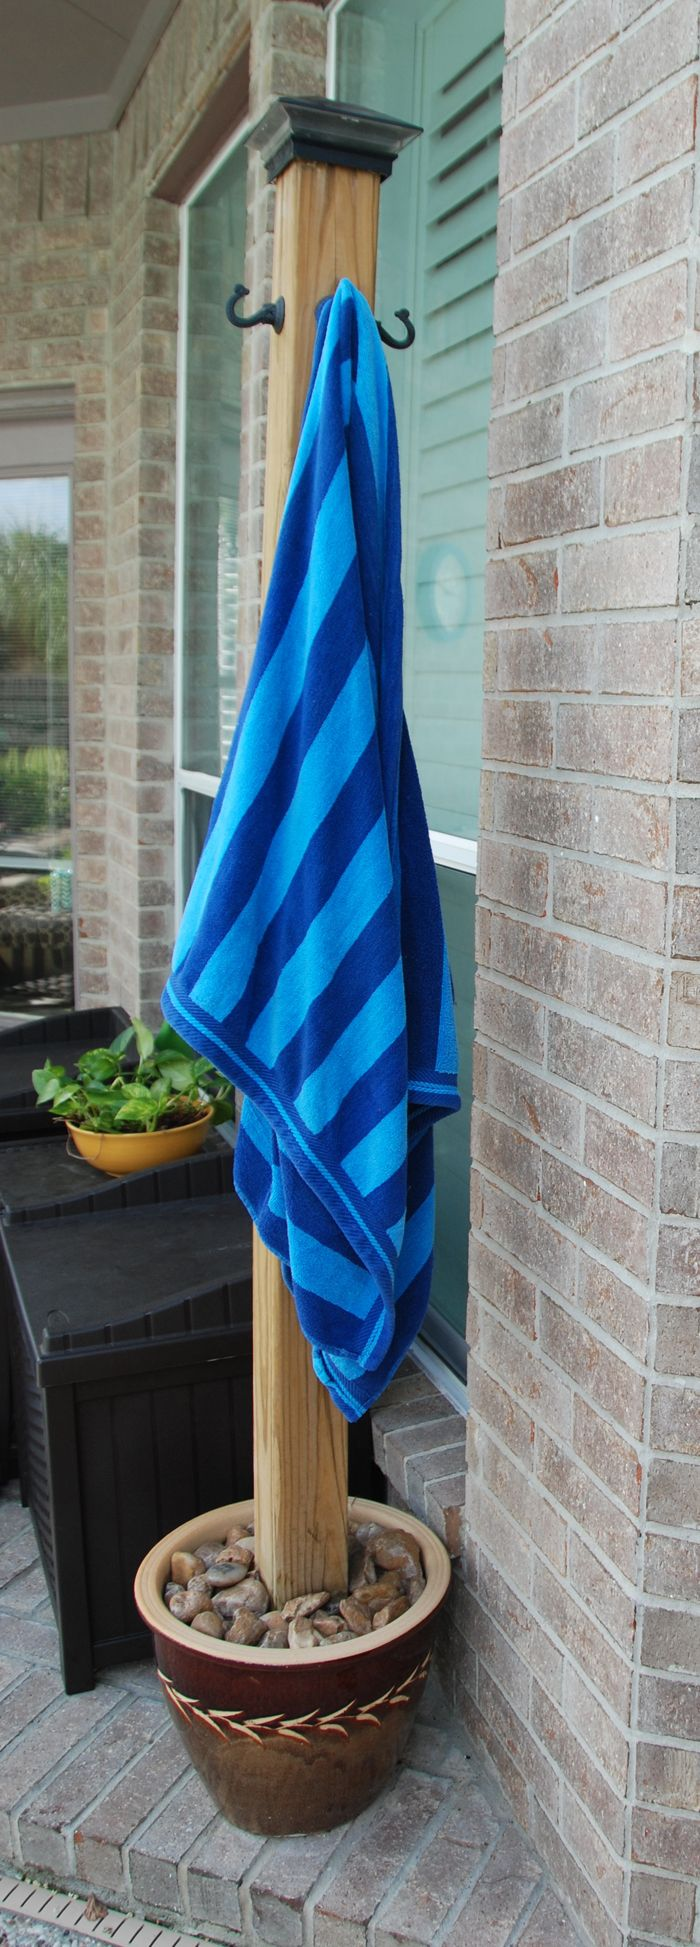 diy pool towel holder we made this stand to hang our wet pool towels to